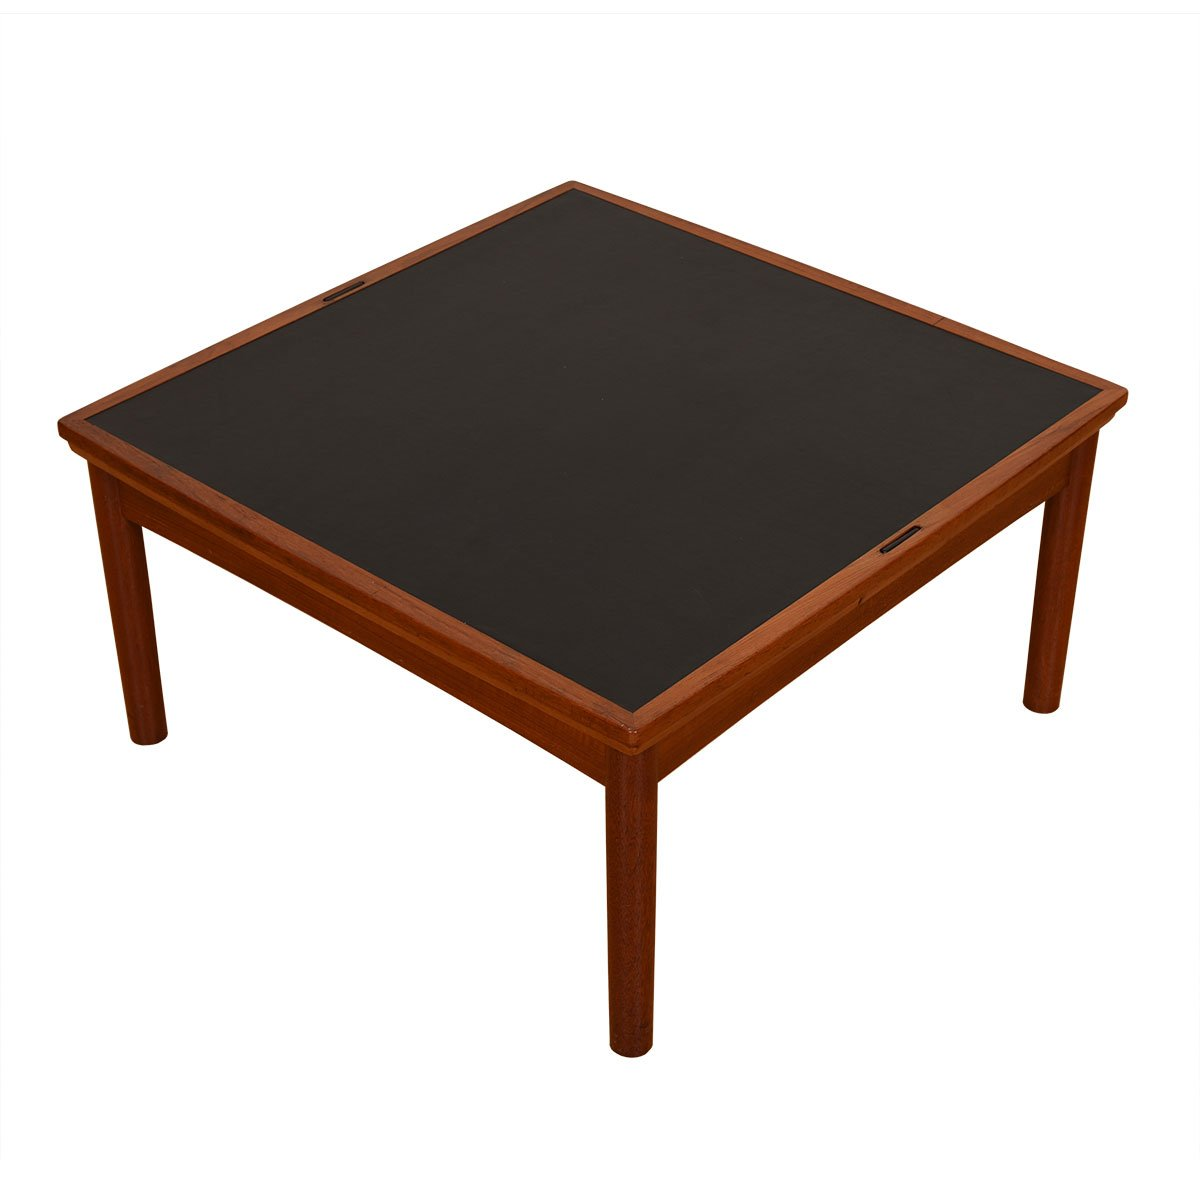 Danish Modern Teak Expanding Flip-Top Coffee Table.